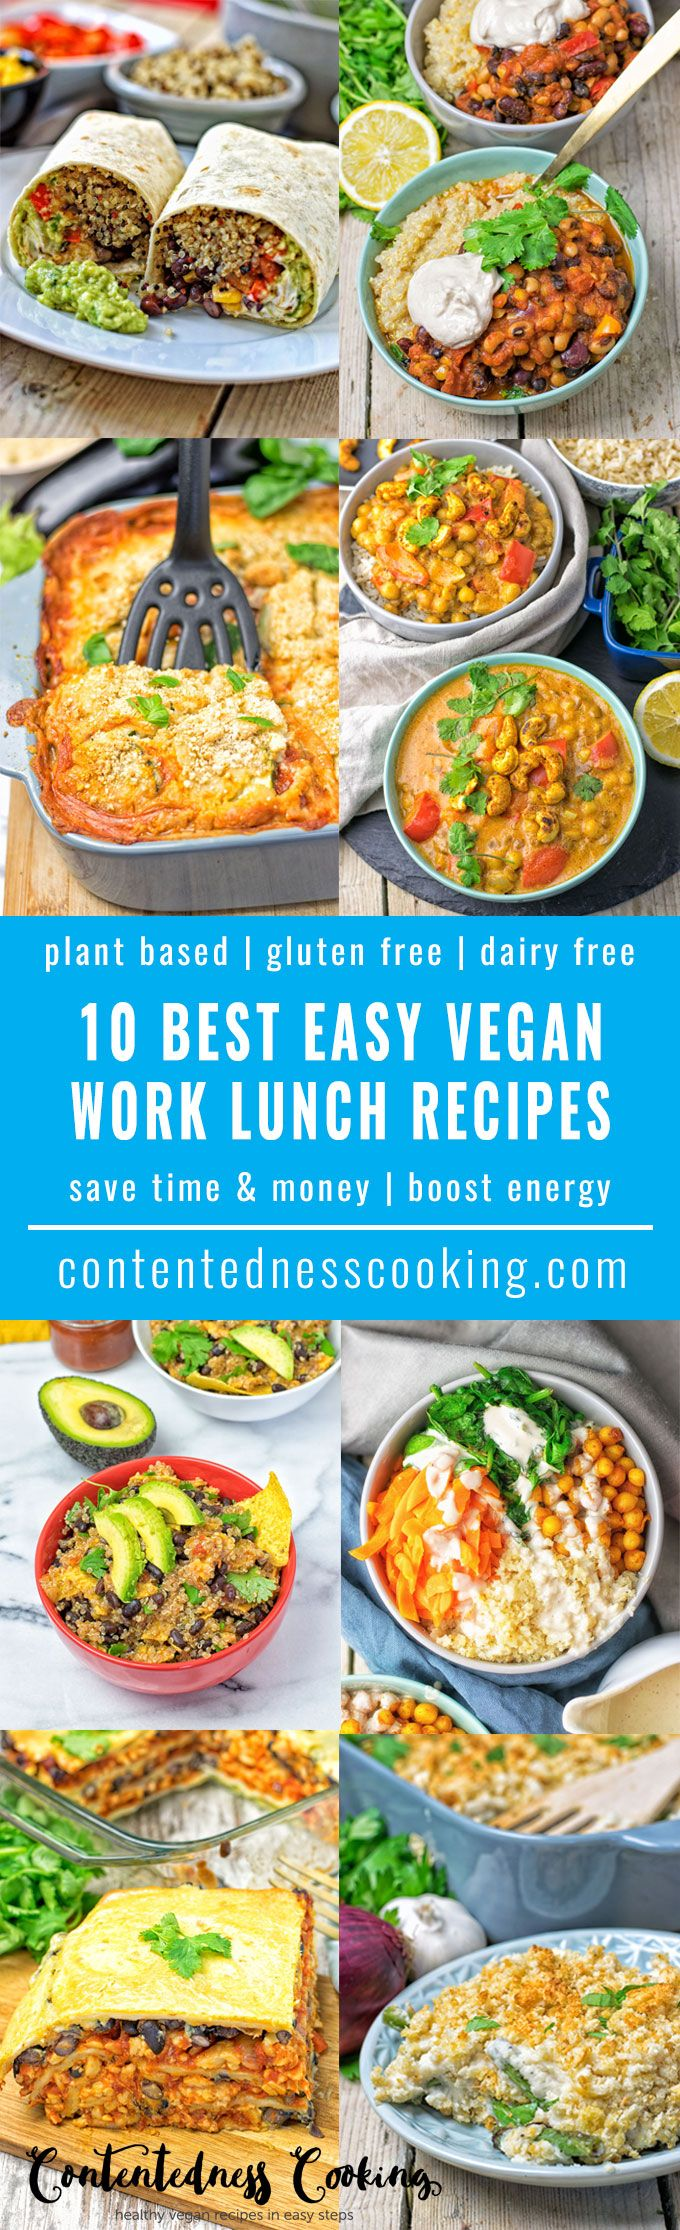 10 Best Easy Vegan Work Lunch Recipes Vegan And Vegetarian